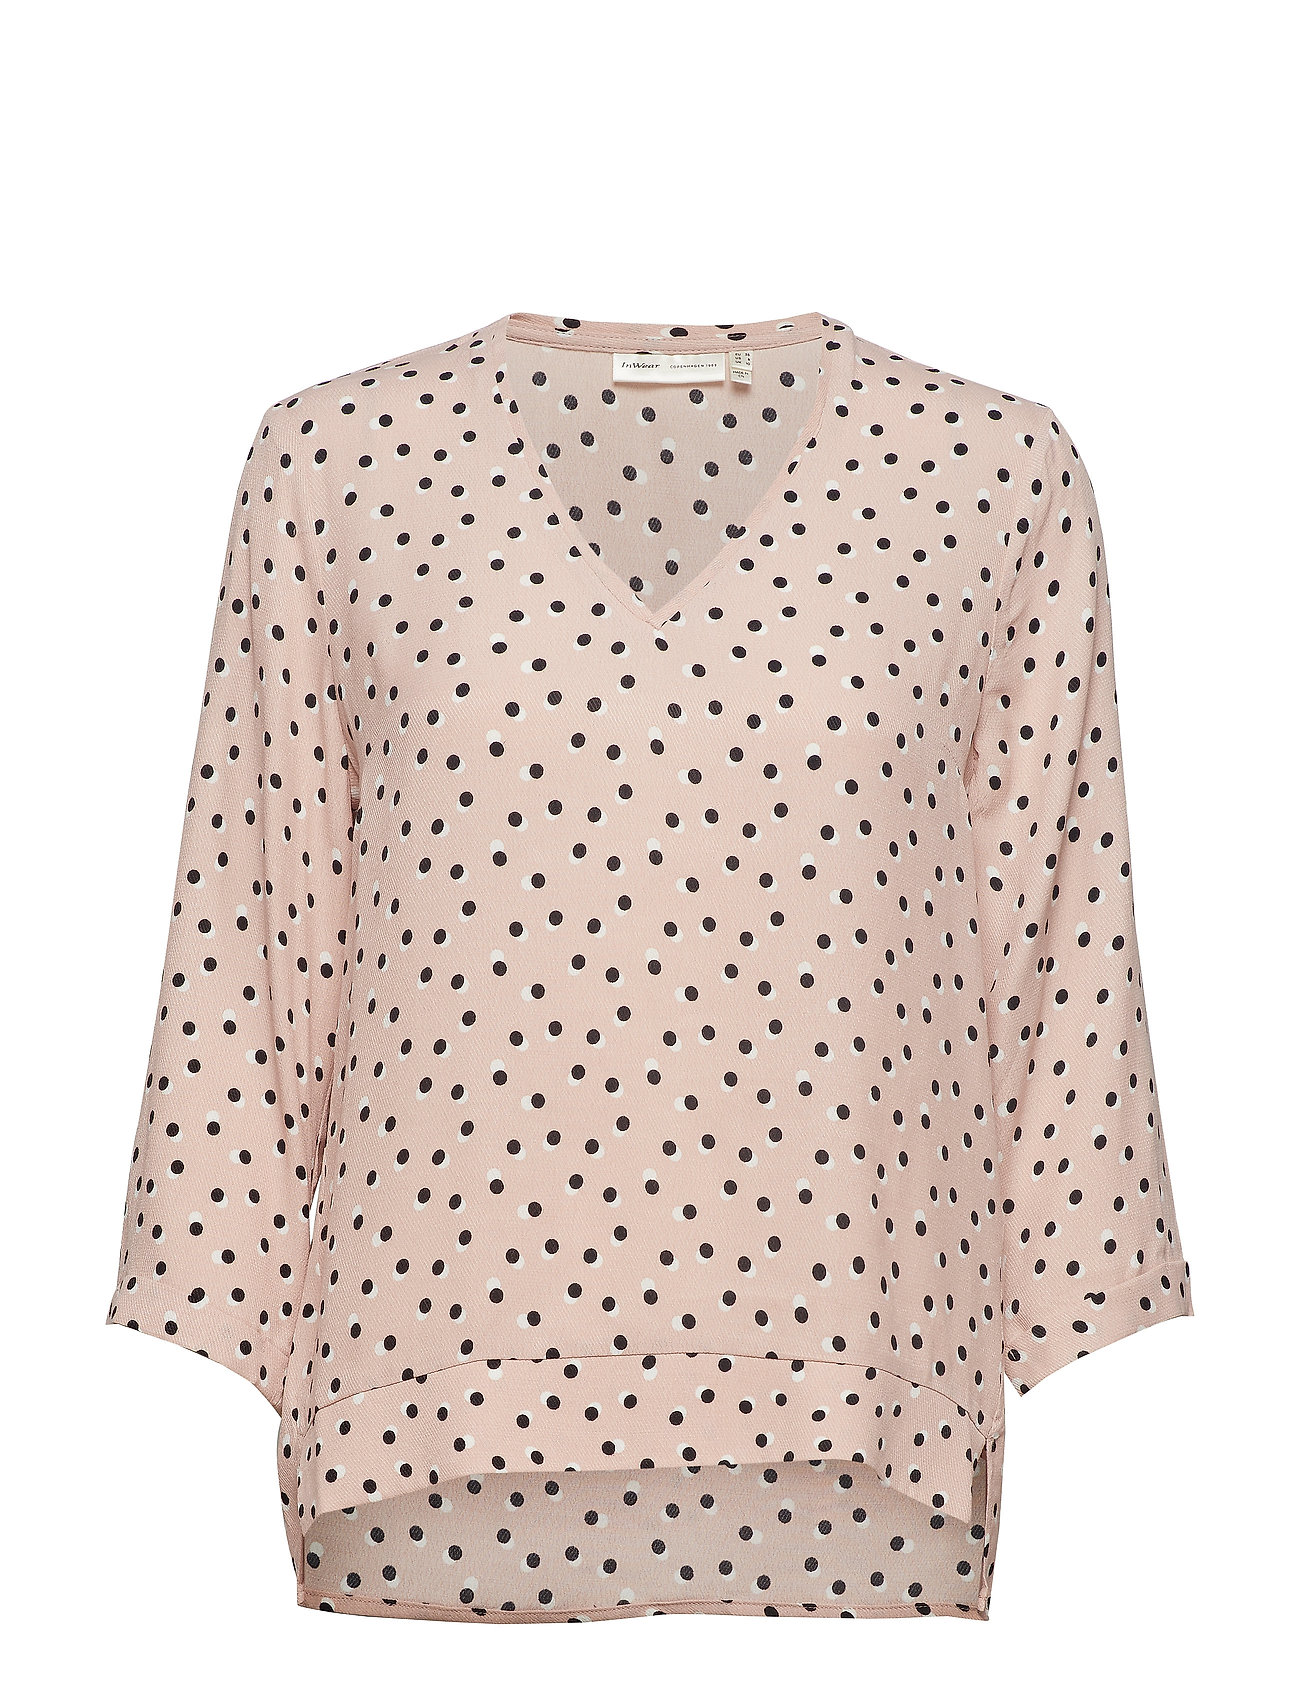 InWear Blake V-neck Top - ROSE DUST DOUBLE DOT